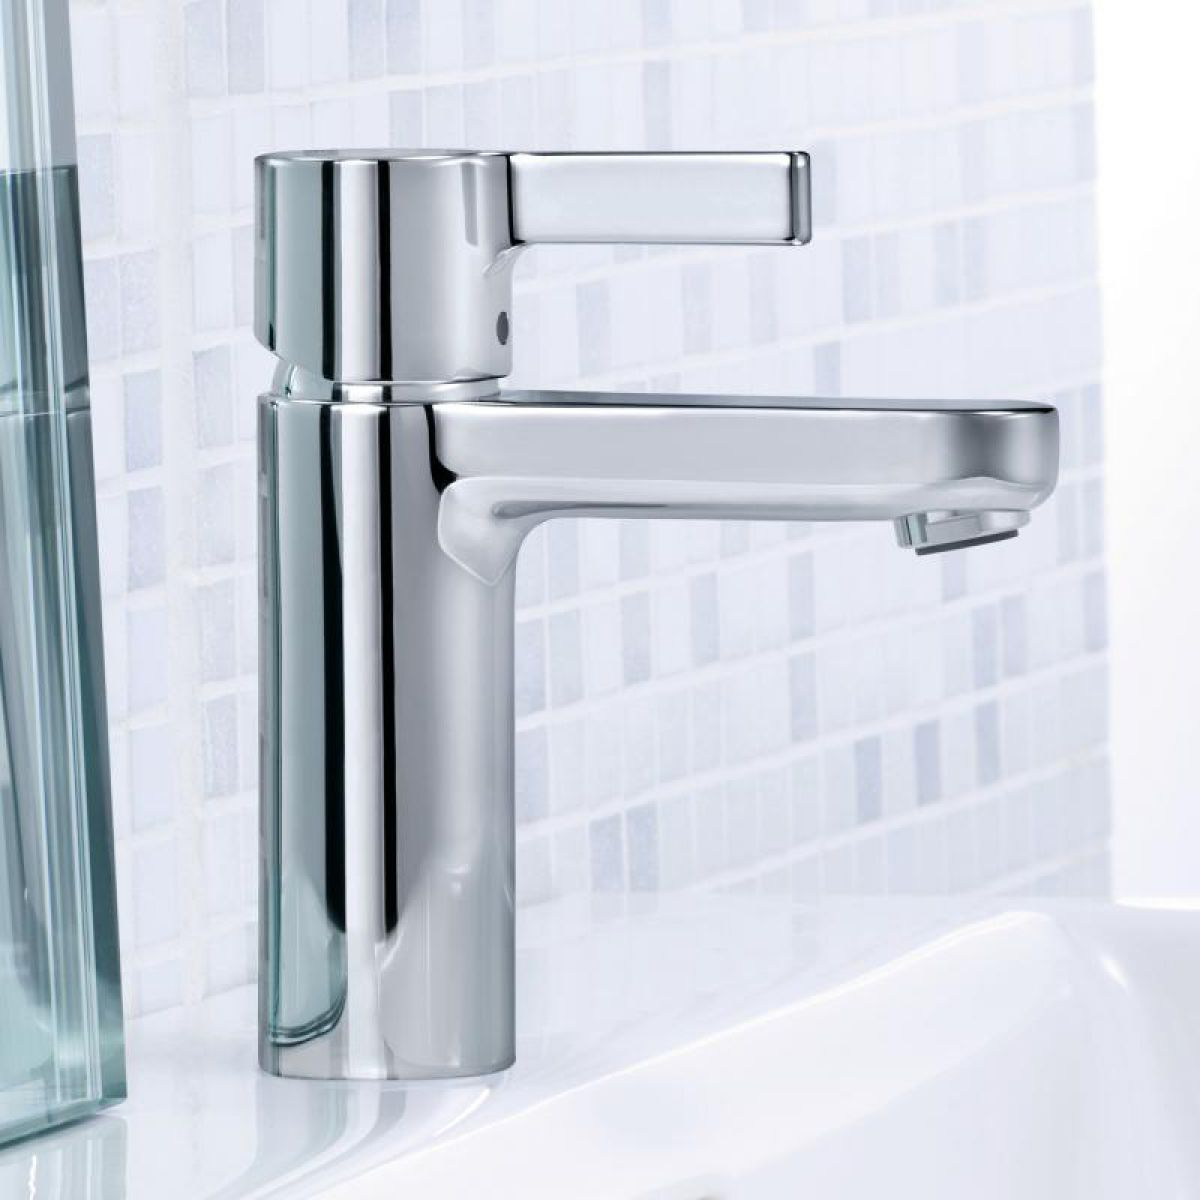 hansgrohe metris s 100 basin mixer tap uk bathrooms. Black Bedroom Furniture Sets. Home Design Ideas